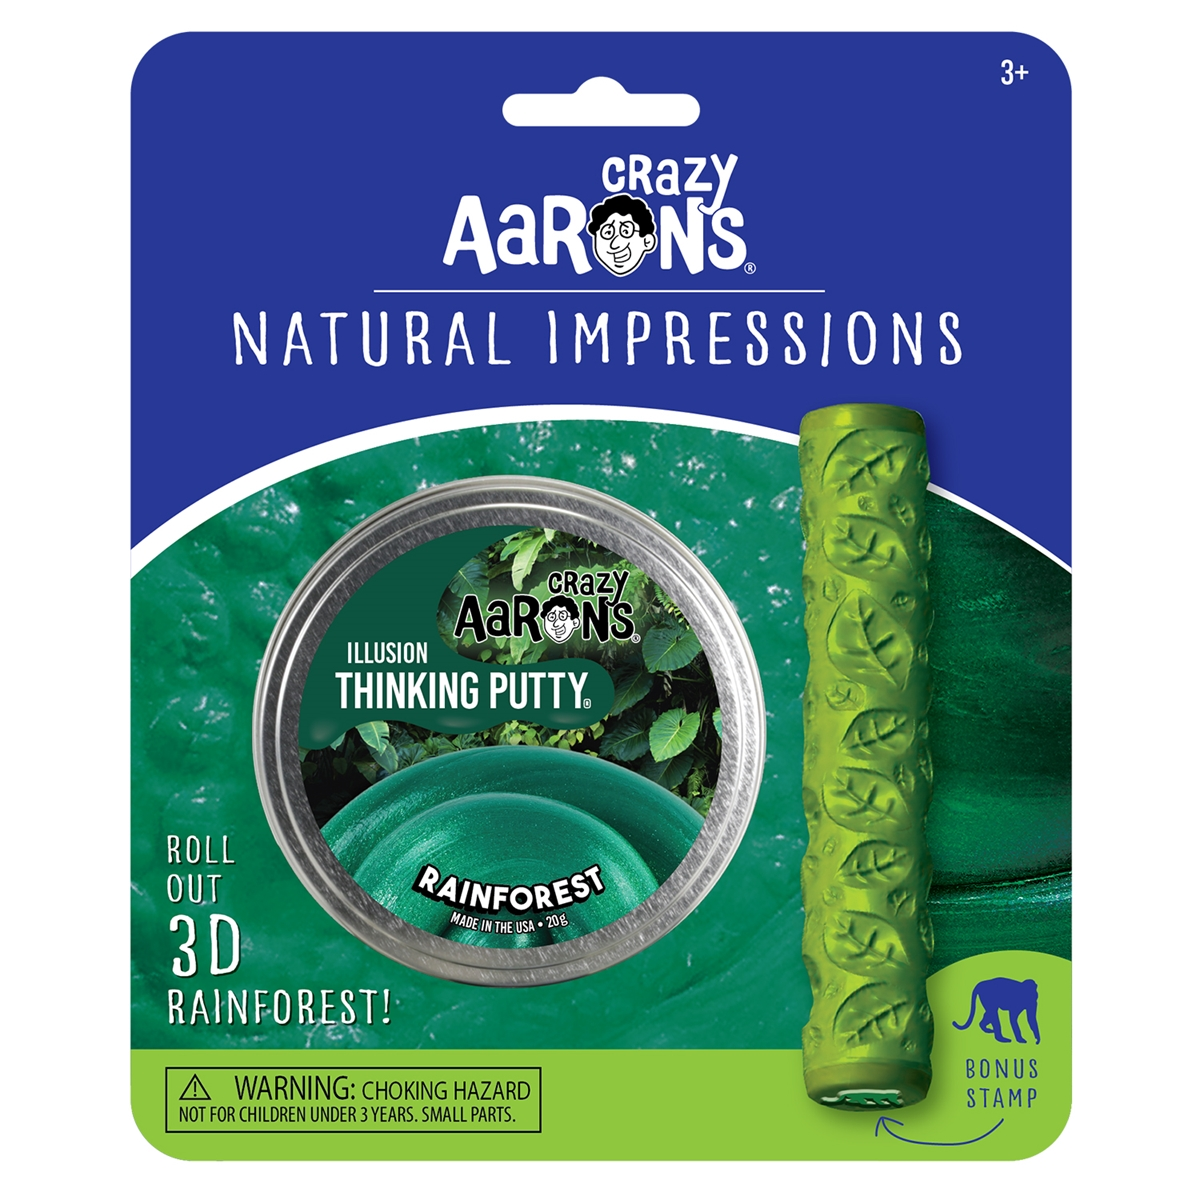 Natural Impressions Rainforest Thinking Putty